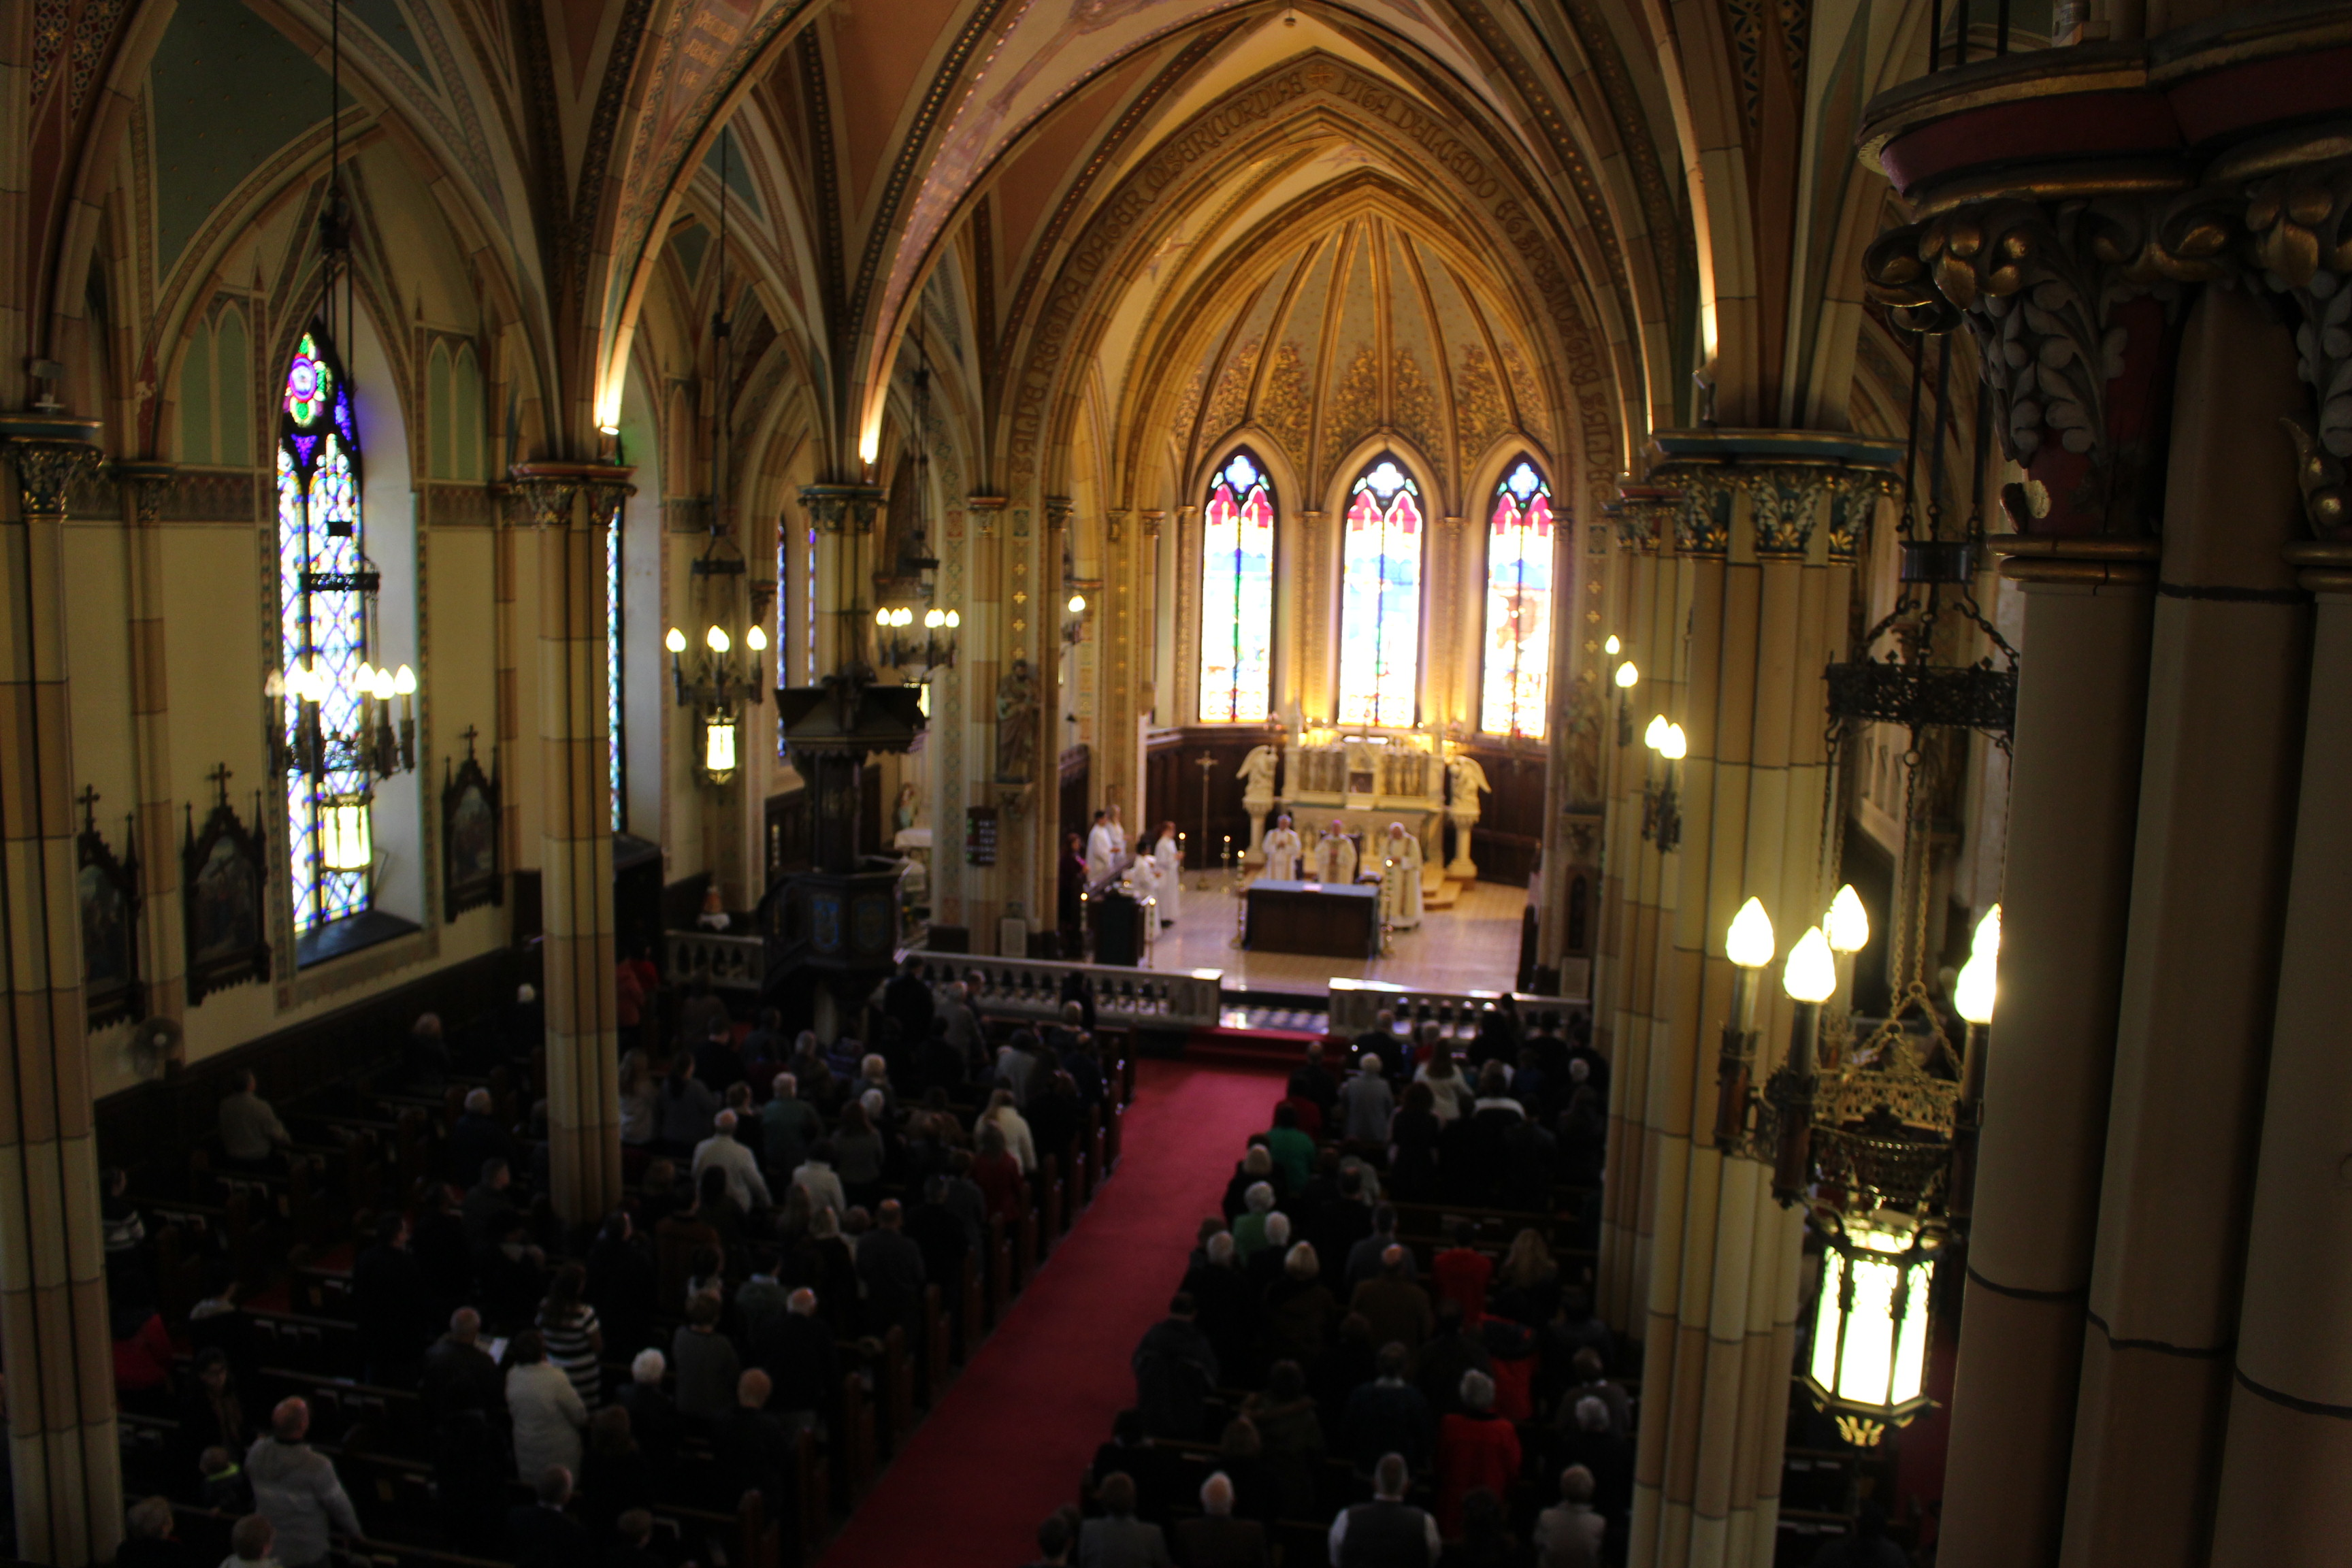 Parishioners gather for what may be the last service at Assumption Church on November 2, 2014. (Photo by Jason Viau)